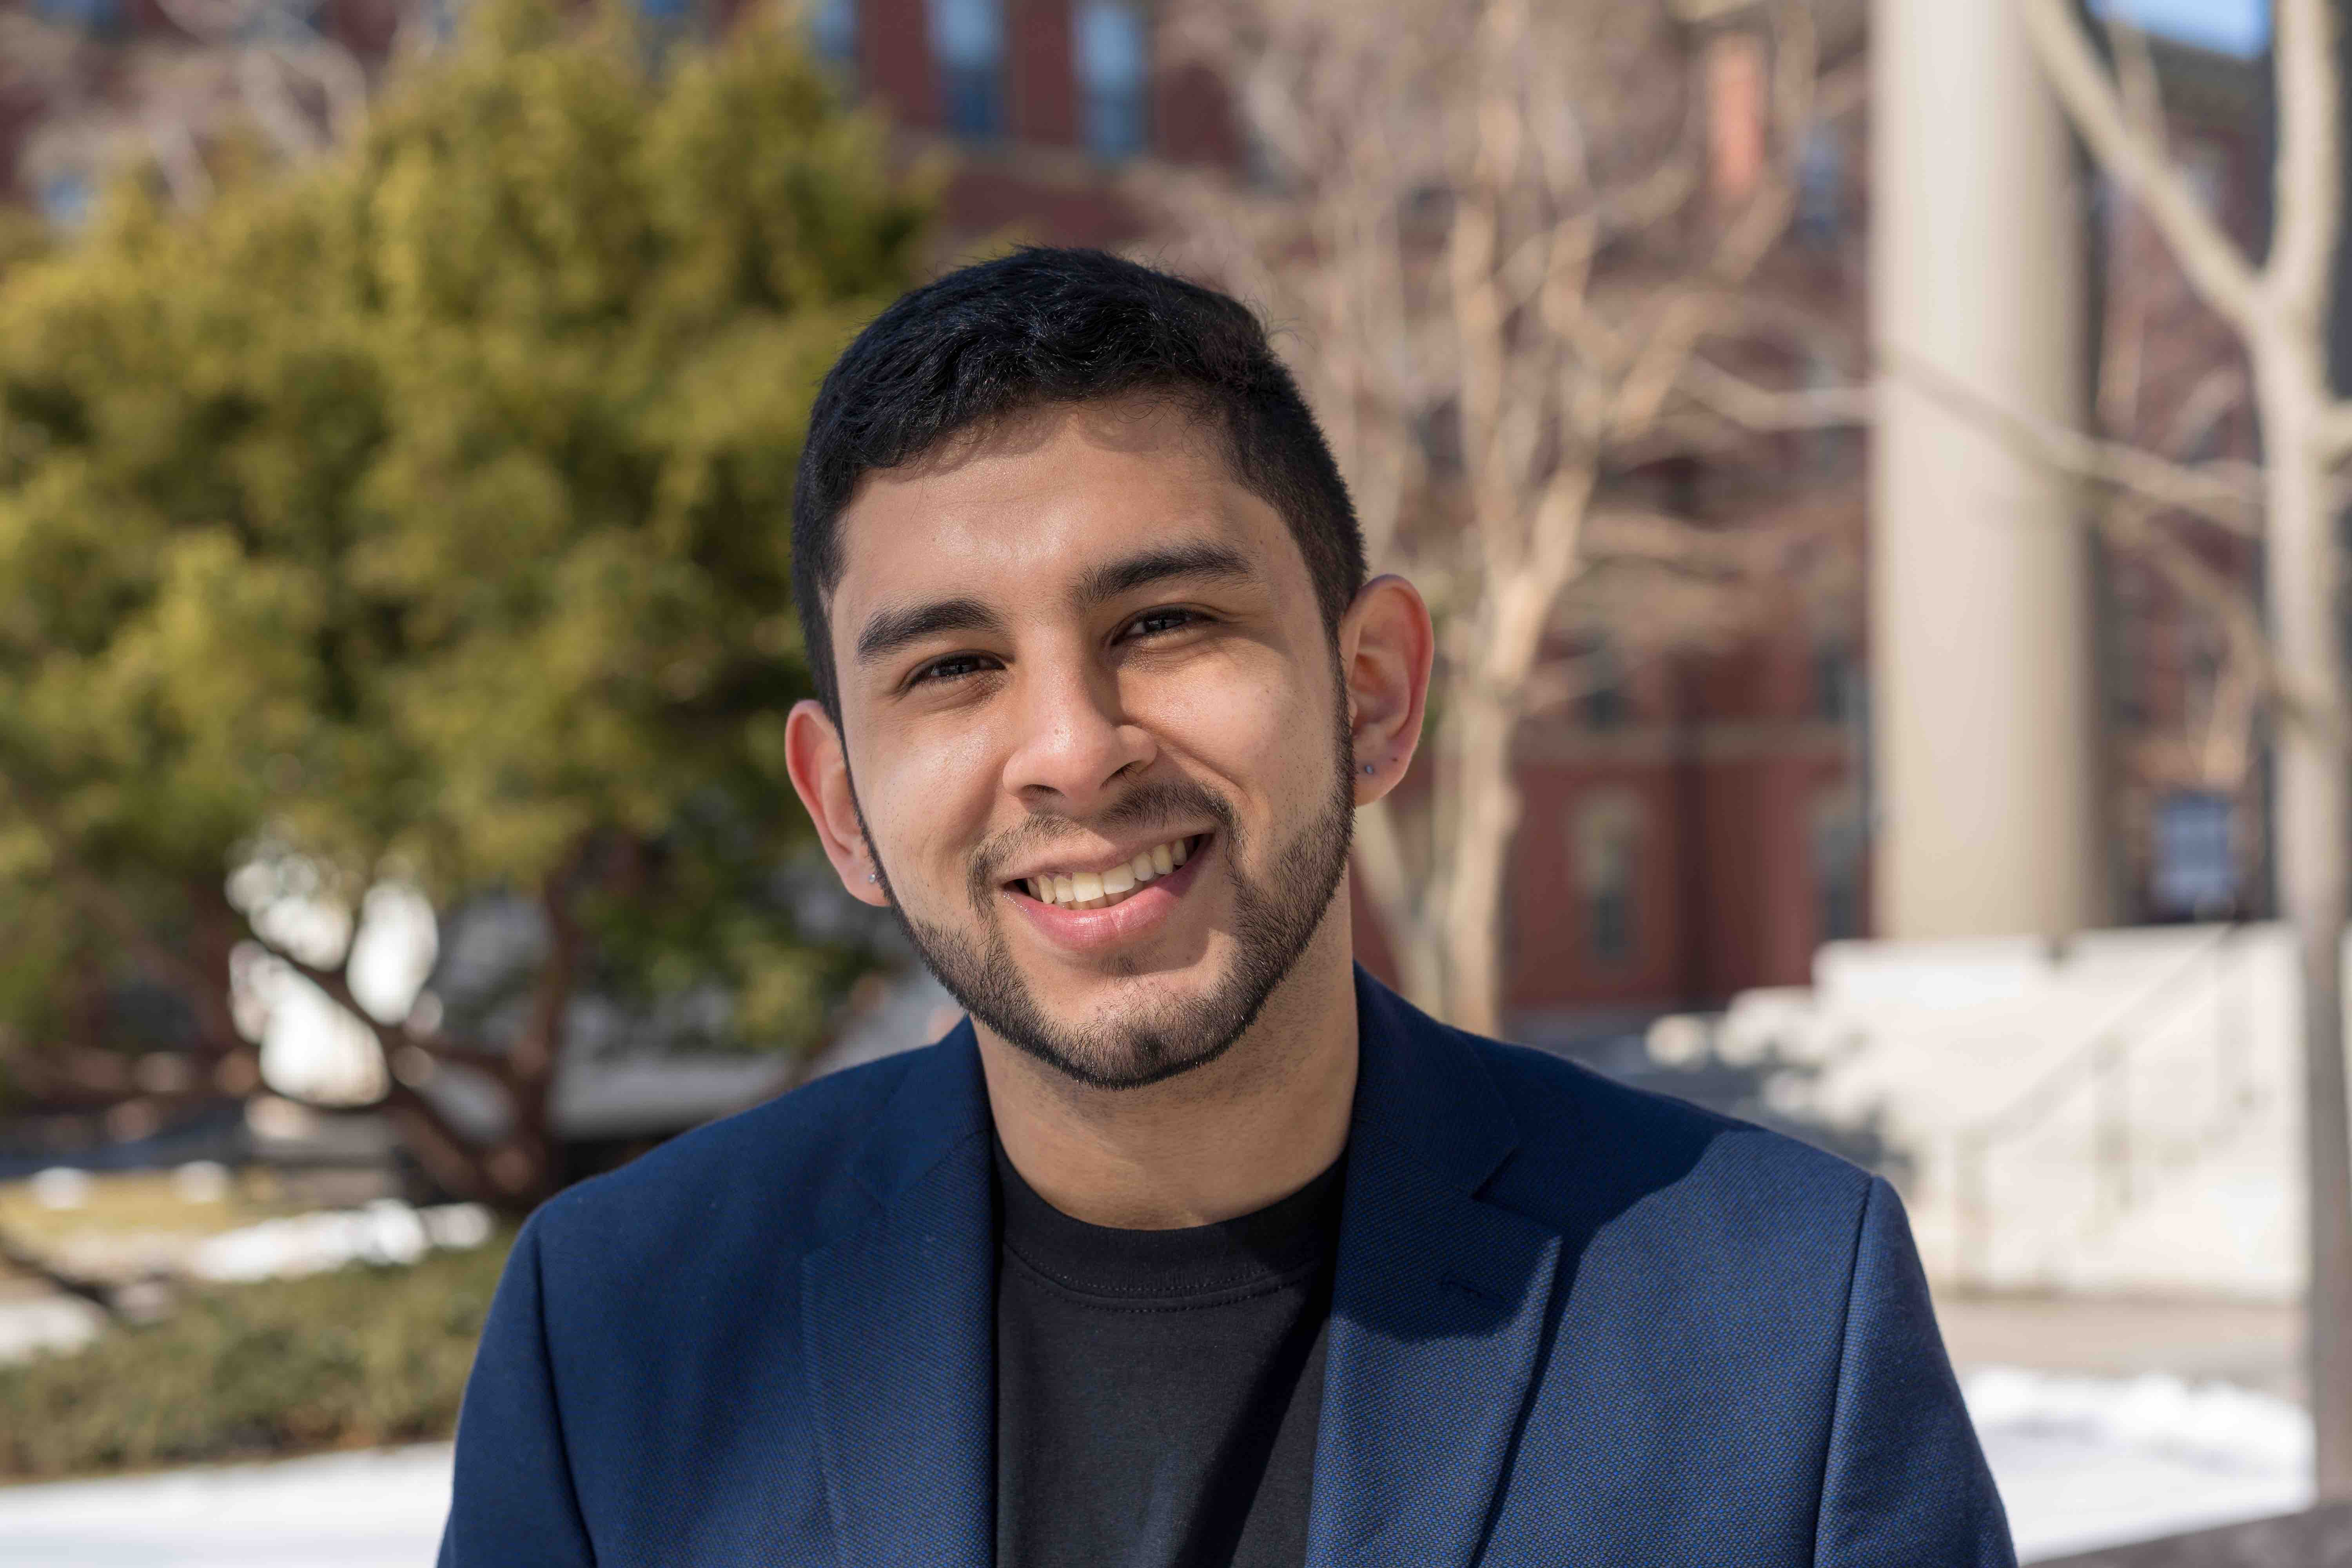 Meet Ruben Reyes, the Harvard Grad Who Started the University's Only Latinx Literary Mag